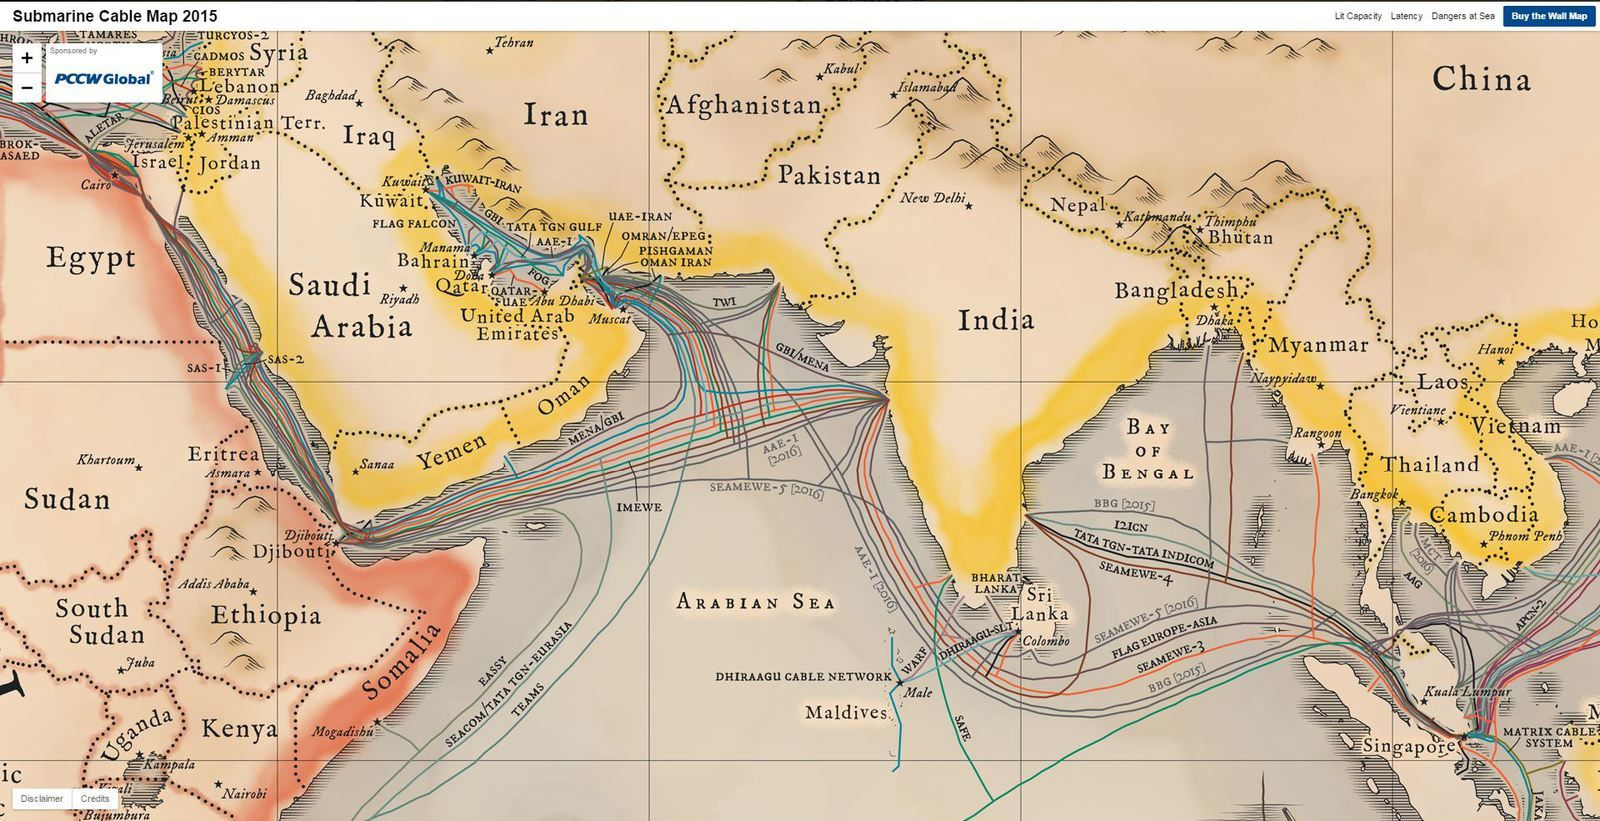 Global Internet map / Submarine Cable Map 2015